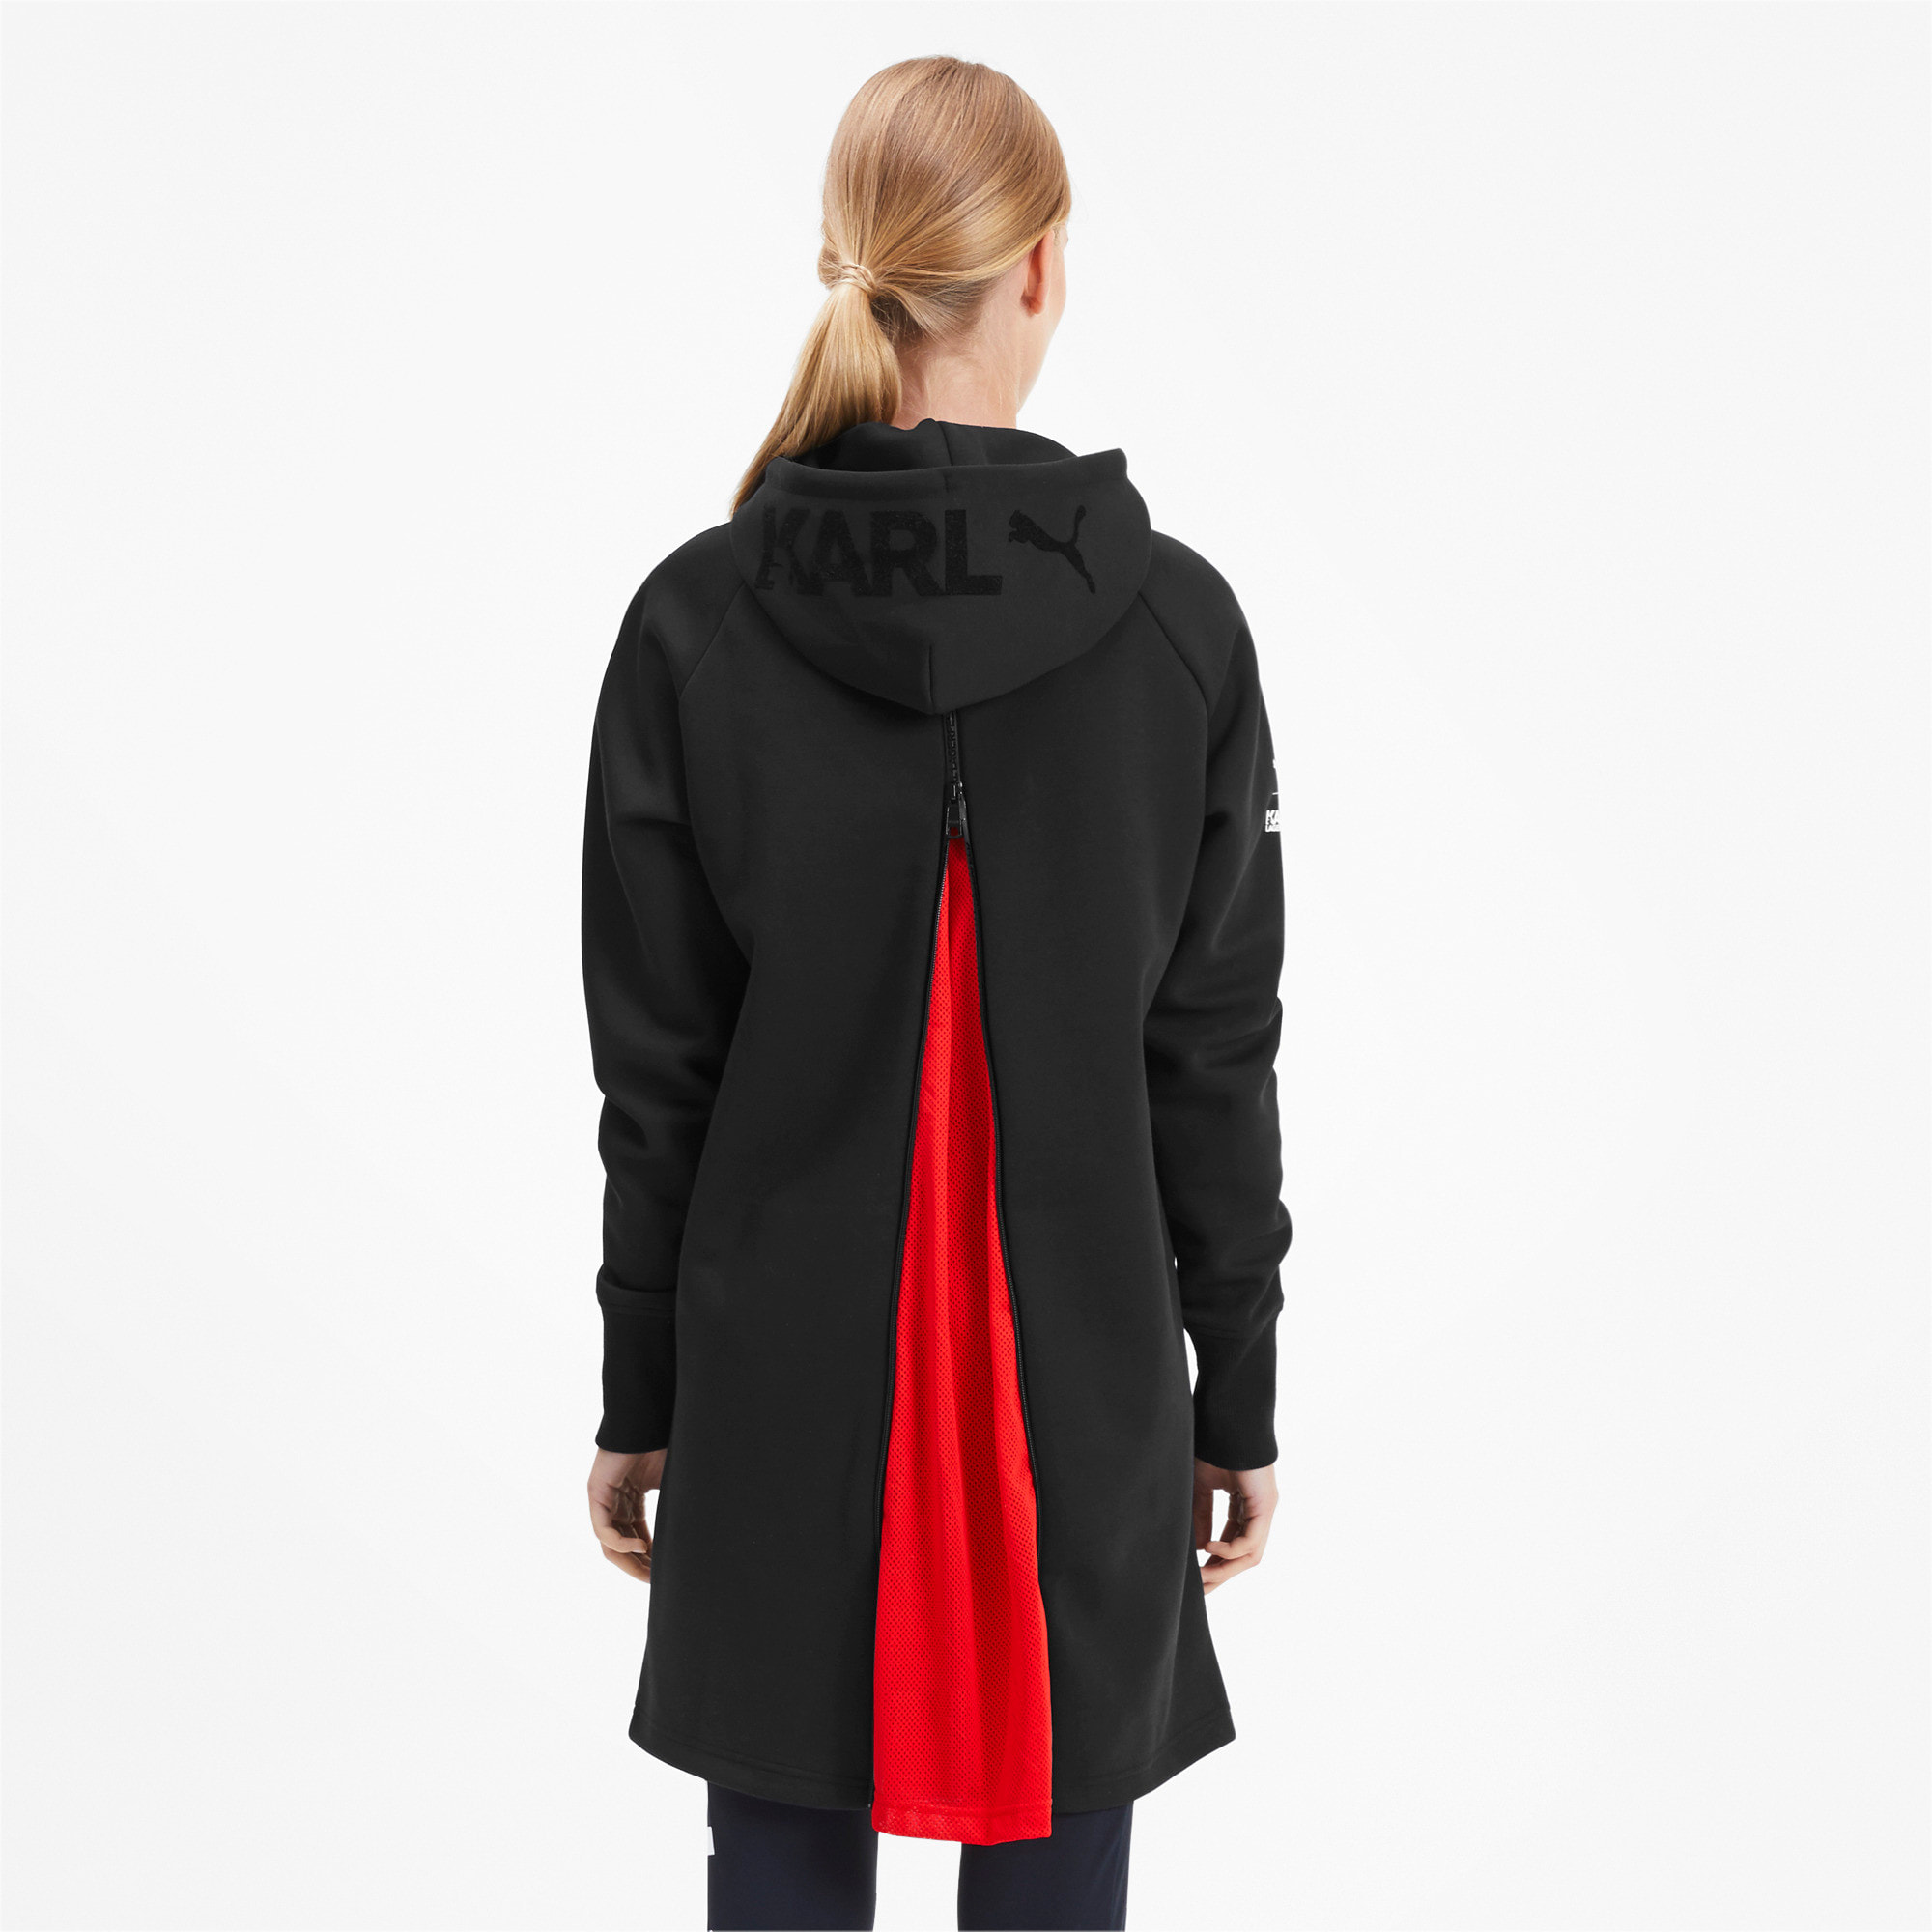 Thumbnail 3 of PUMA x KARL LAGERFELD Hooded Women's Dress, Puma Black, medium